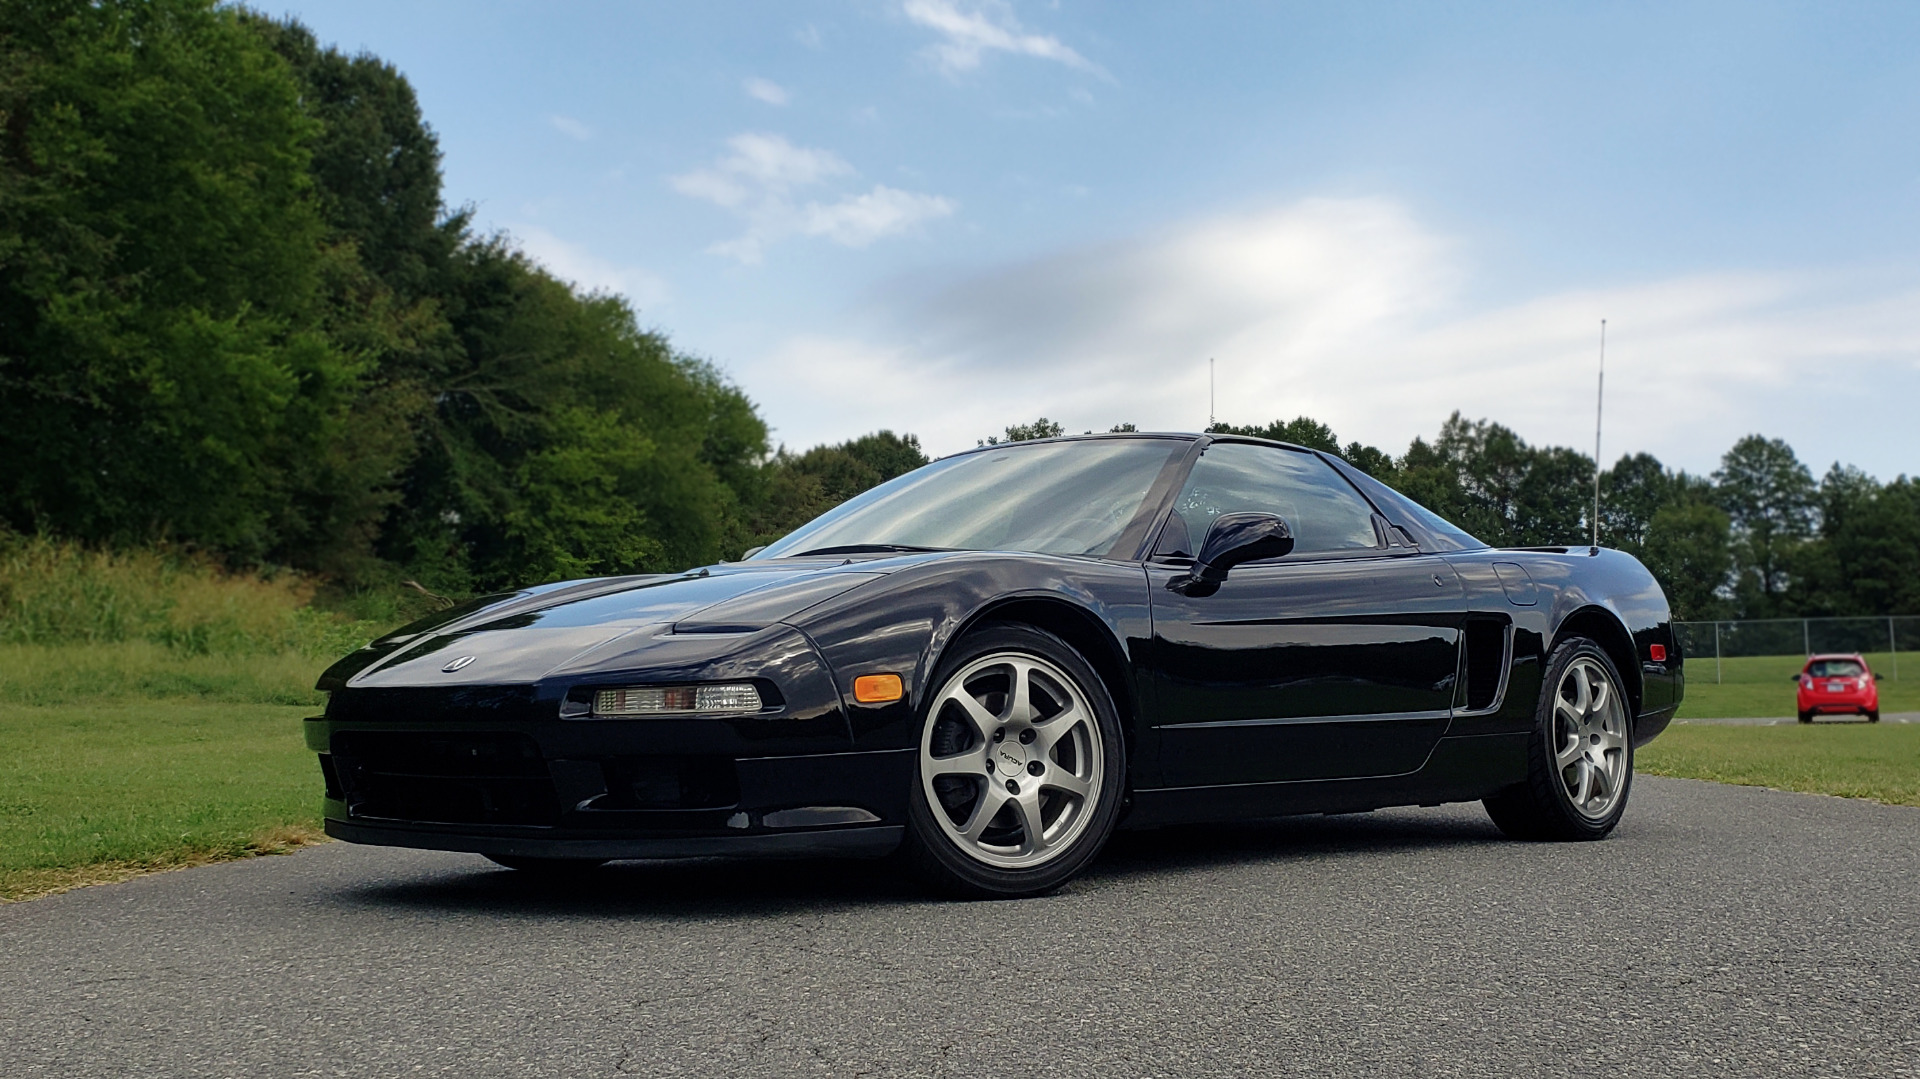 Used 1995 Acura NSX OPEN TOP / 5-SPD MAN / LOW MILES / SUPER CLEAN for sale Sold at Formula Imports in Charlotte NC 28227 1